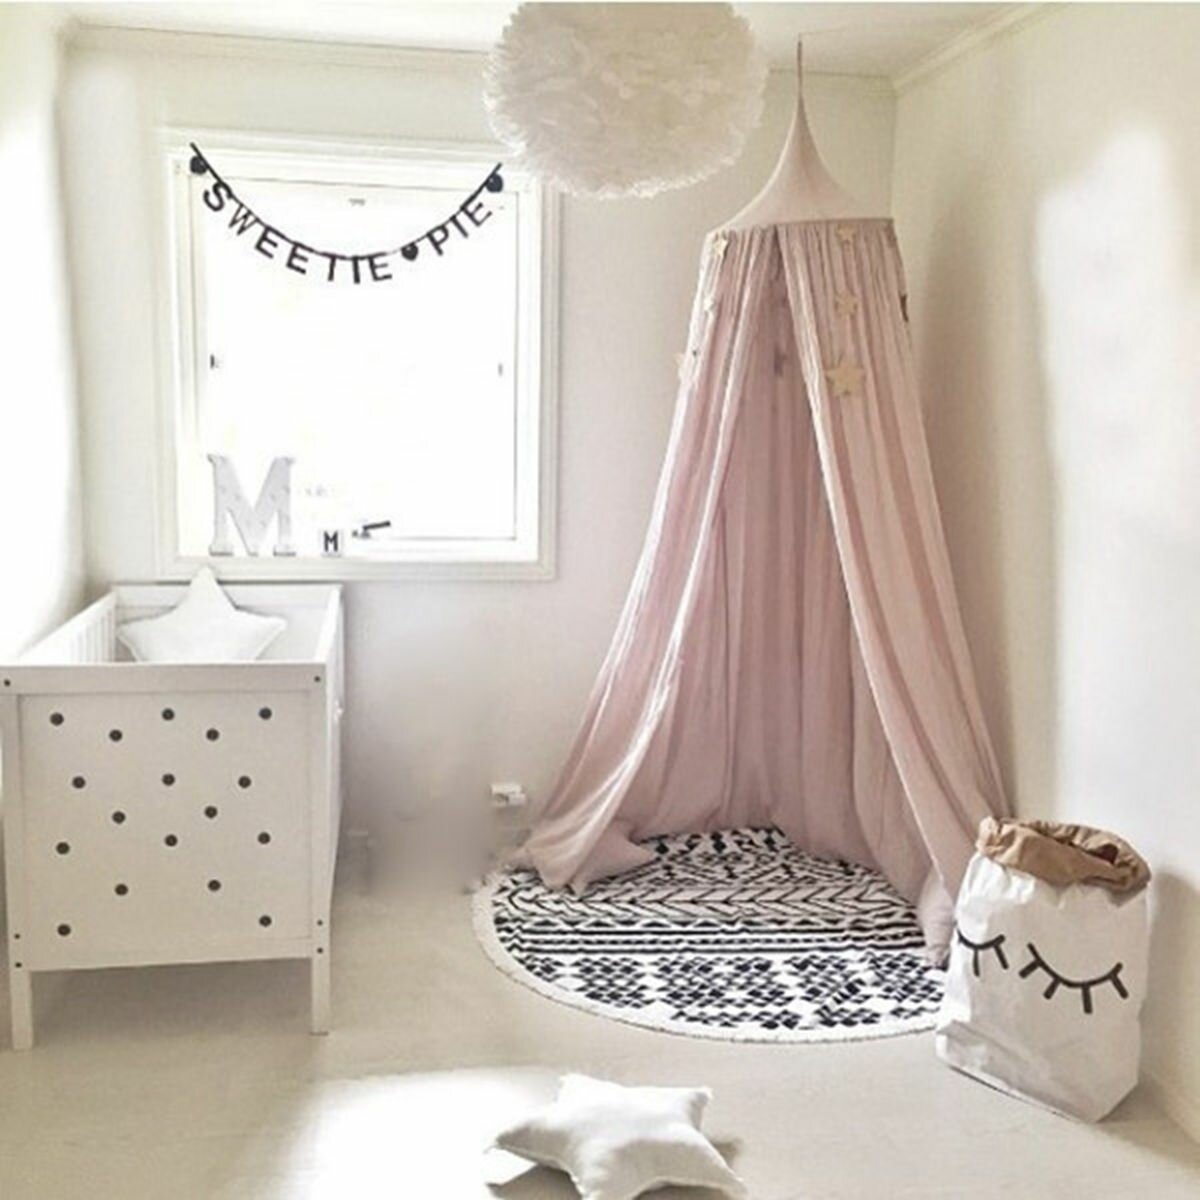 Princess Canopy for Girl Beds Kids Bed Canopy Baby Crib Net Play Tent Bedding for Bedrooms